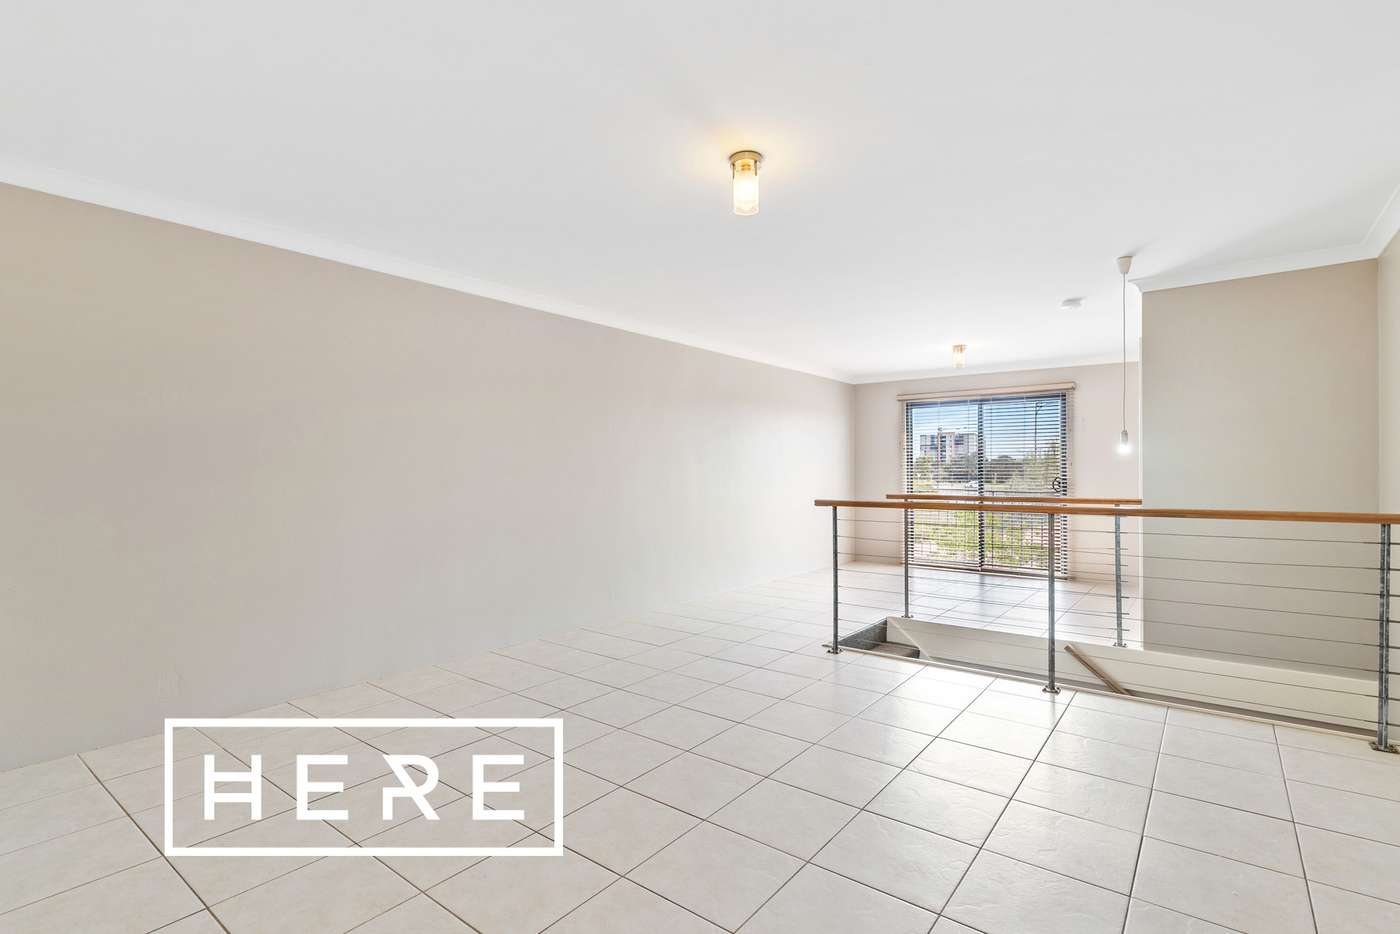 Sixth view of Homely townhouse listing, 5/2 Hogarth Street, Cannington WA 6107